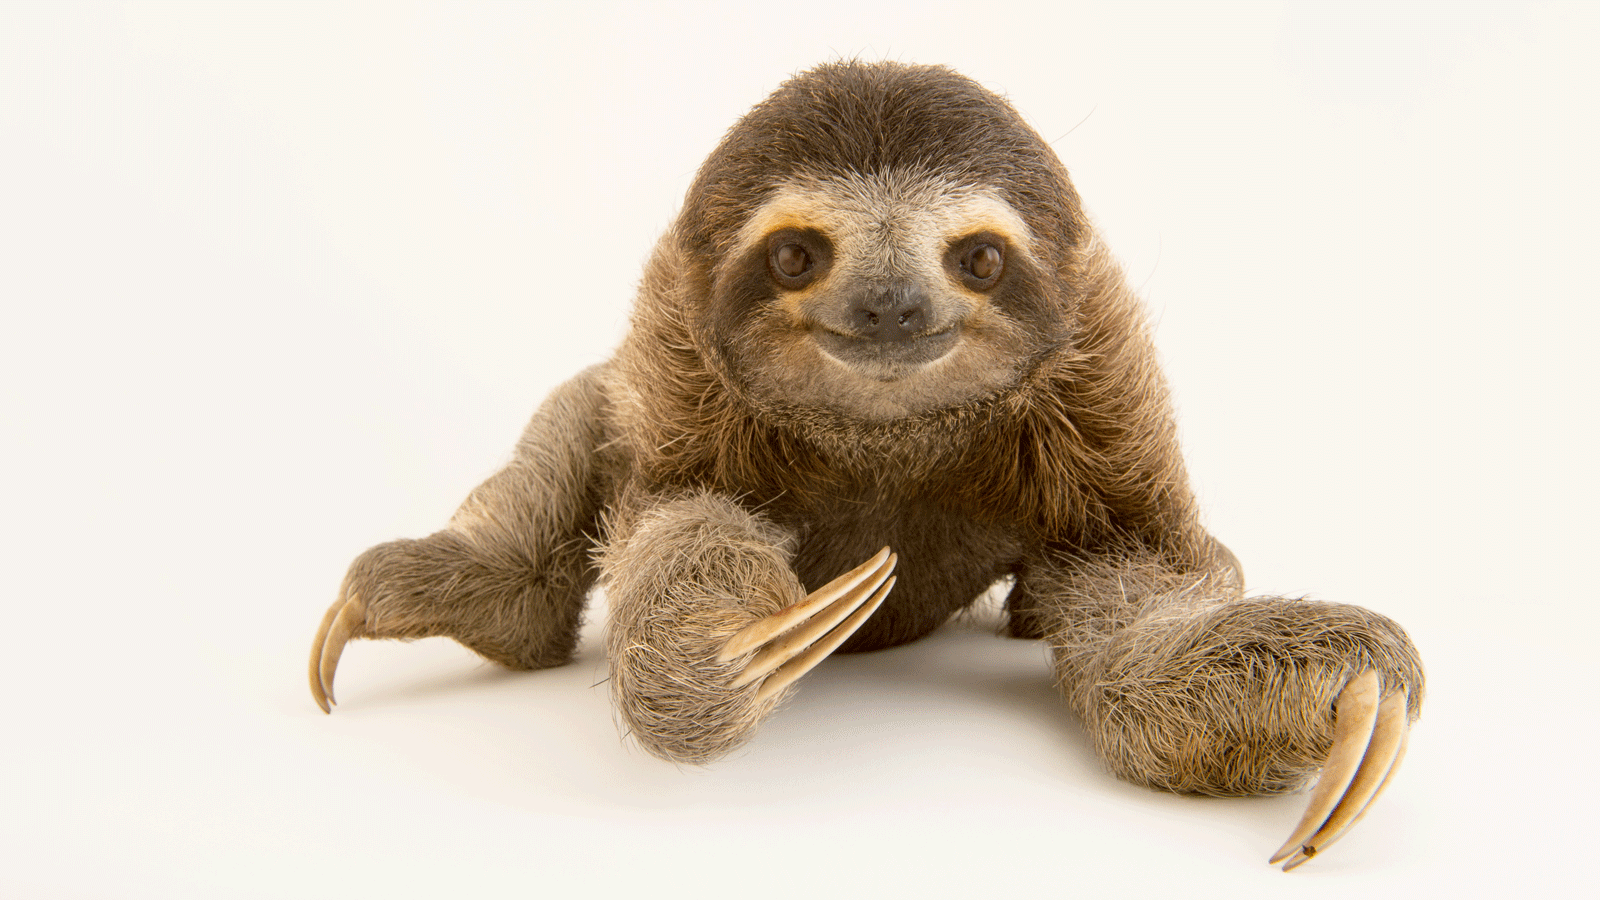 PlusPNG - Sloth PNG